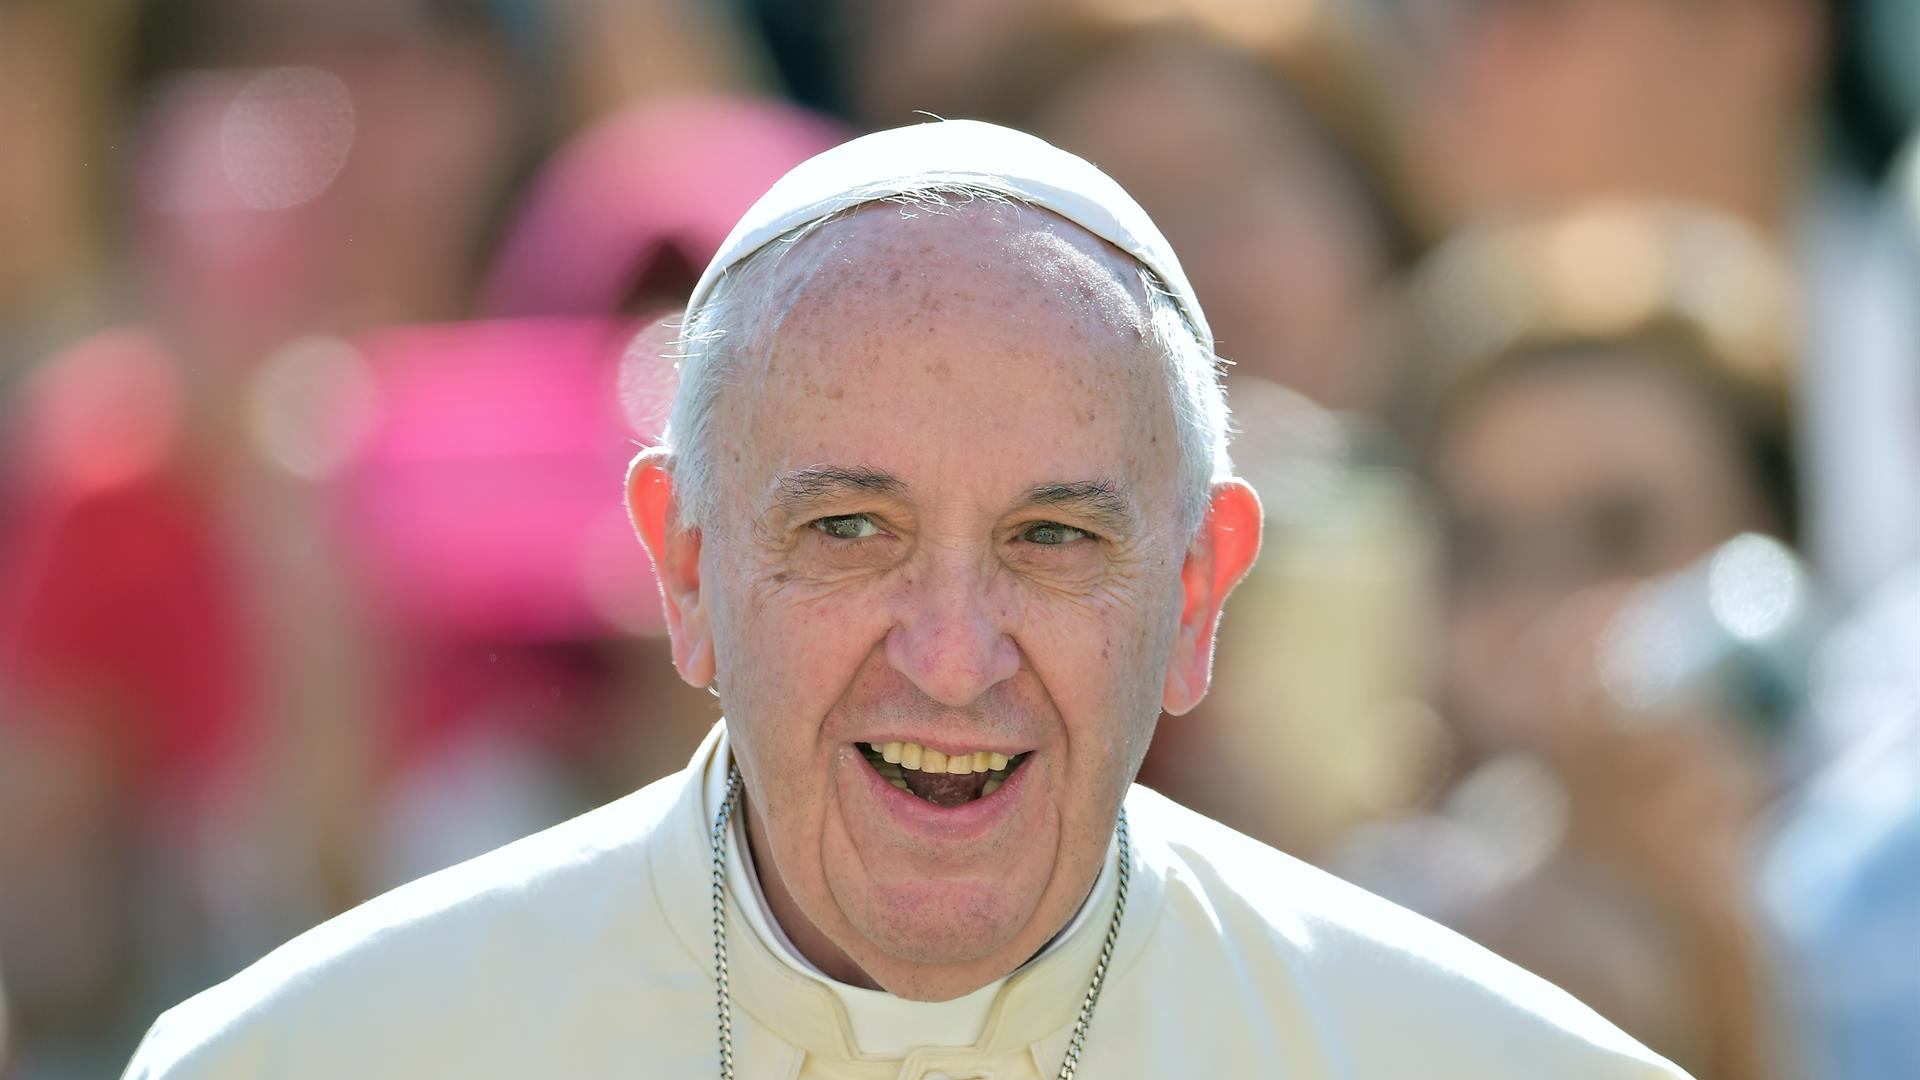 Papafrancesco VINCENZO PINTO:AFP:Getty Images6